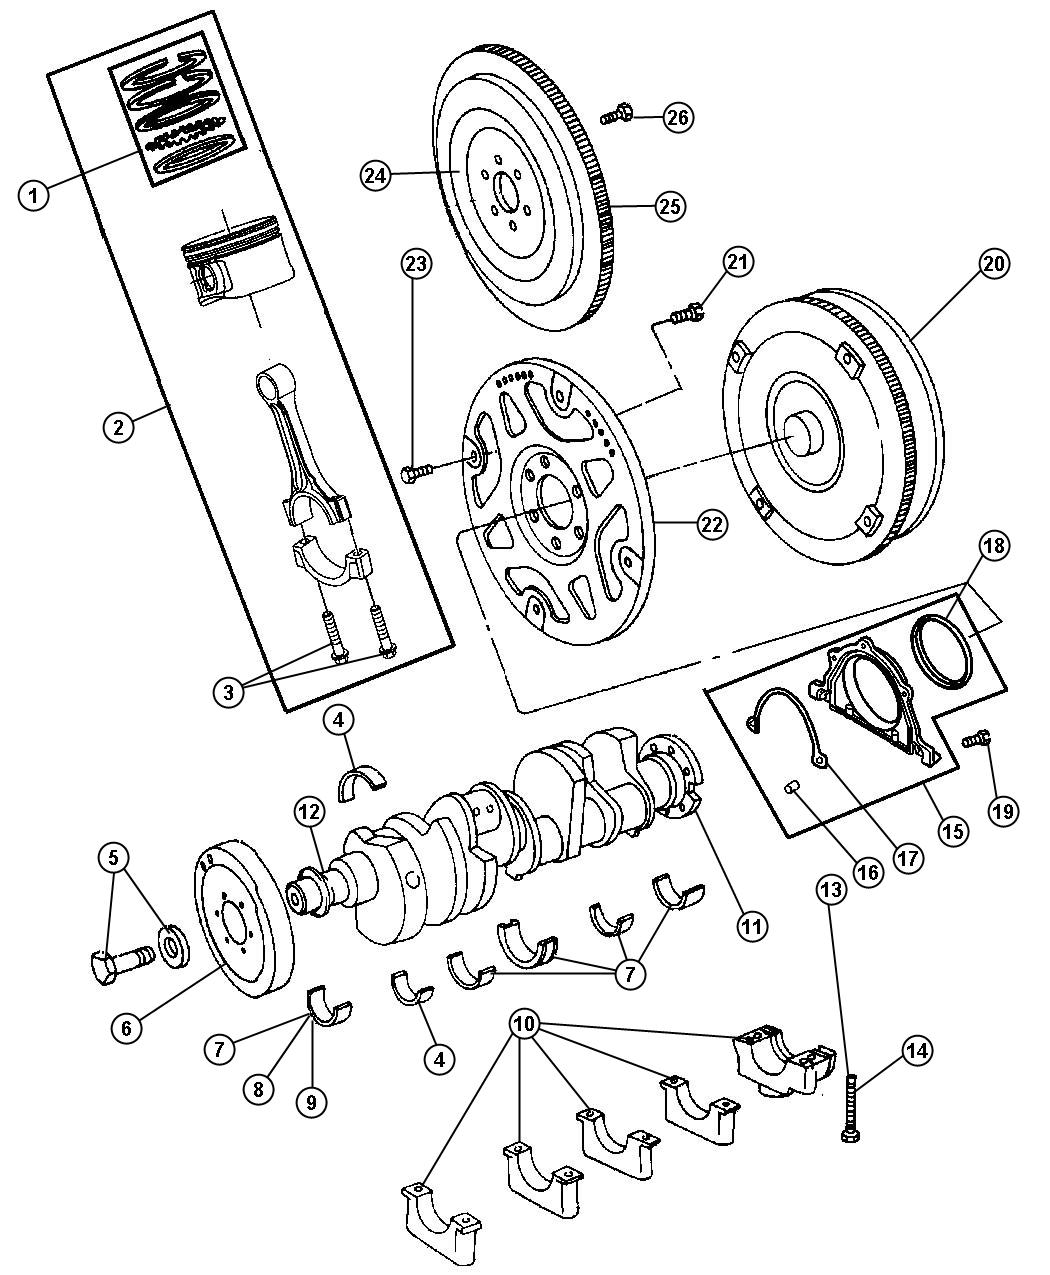 Flathead Ford Starter Solenoid Wiring | Wiring Diagram Database on ford e 350 wiring diagrams, ford fuel pump relay wiring, ford flasher relay wiring, ford ranger starter wiring, ford mini starter wiring, ford coil wiring, ford turn signal switch wiring, ford starter solenoid, ford starter wiring connection, ford alternator wiring diagram, ford regulator wiring, ford ignition wiring, ford cooling fan relay wiring, chevrolet starter wiring, starter solenoid wiring, ford wiring harness, ford dimmer switch wiring, ford knock sensor wiring, ford starter switch wiring, ford fuel gauge wiring,